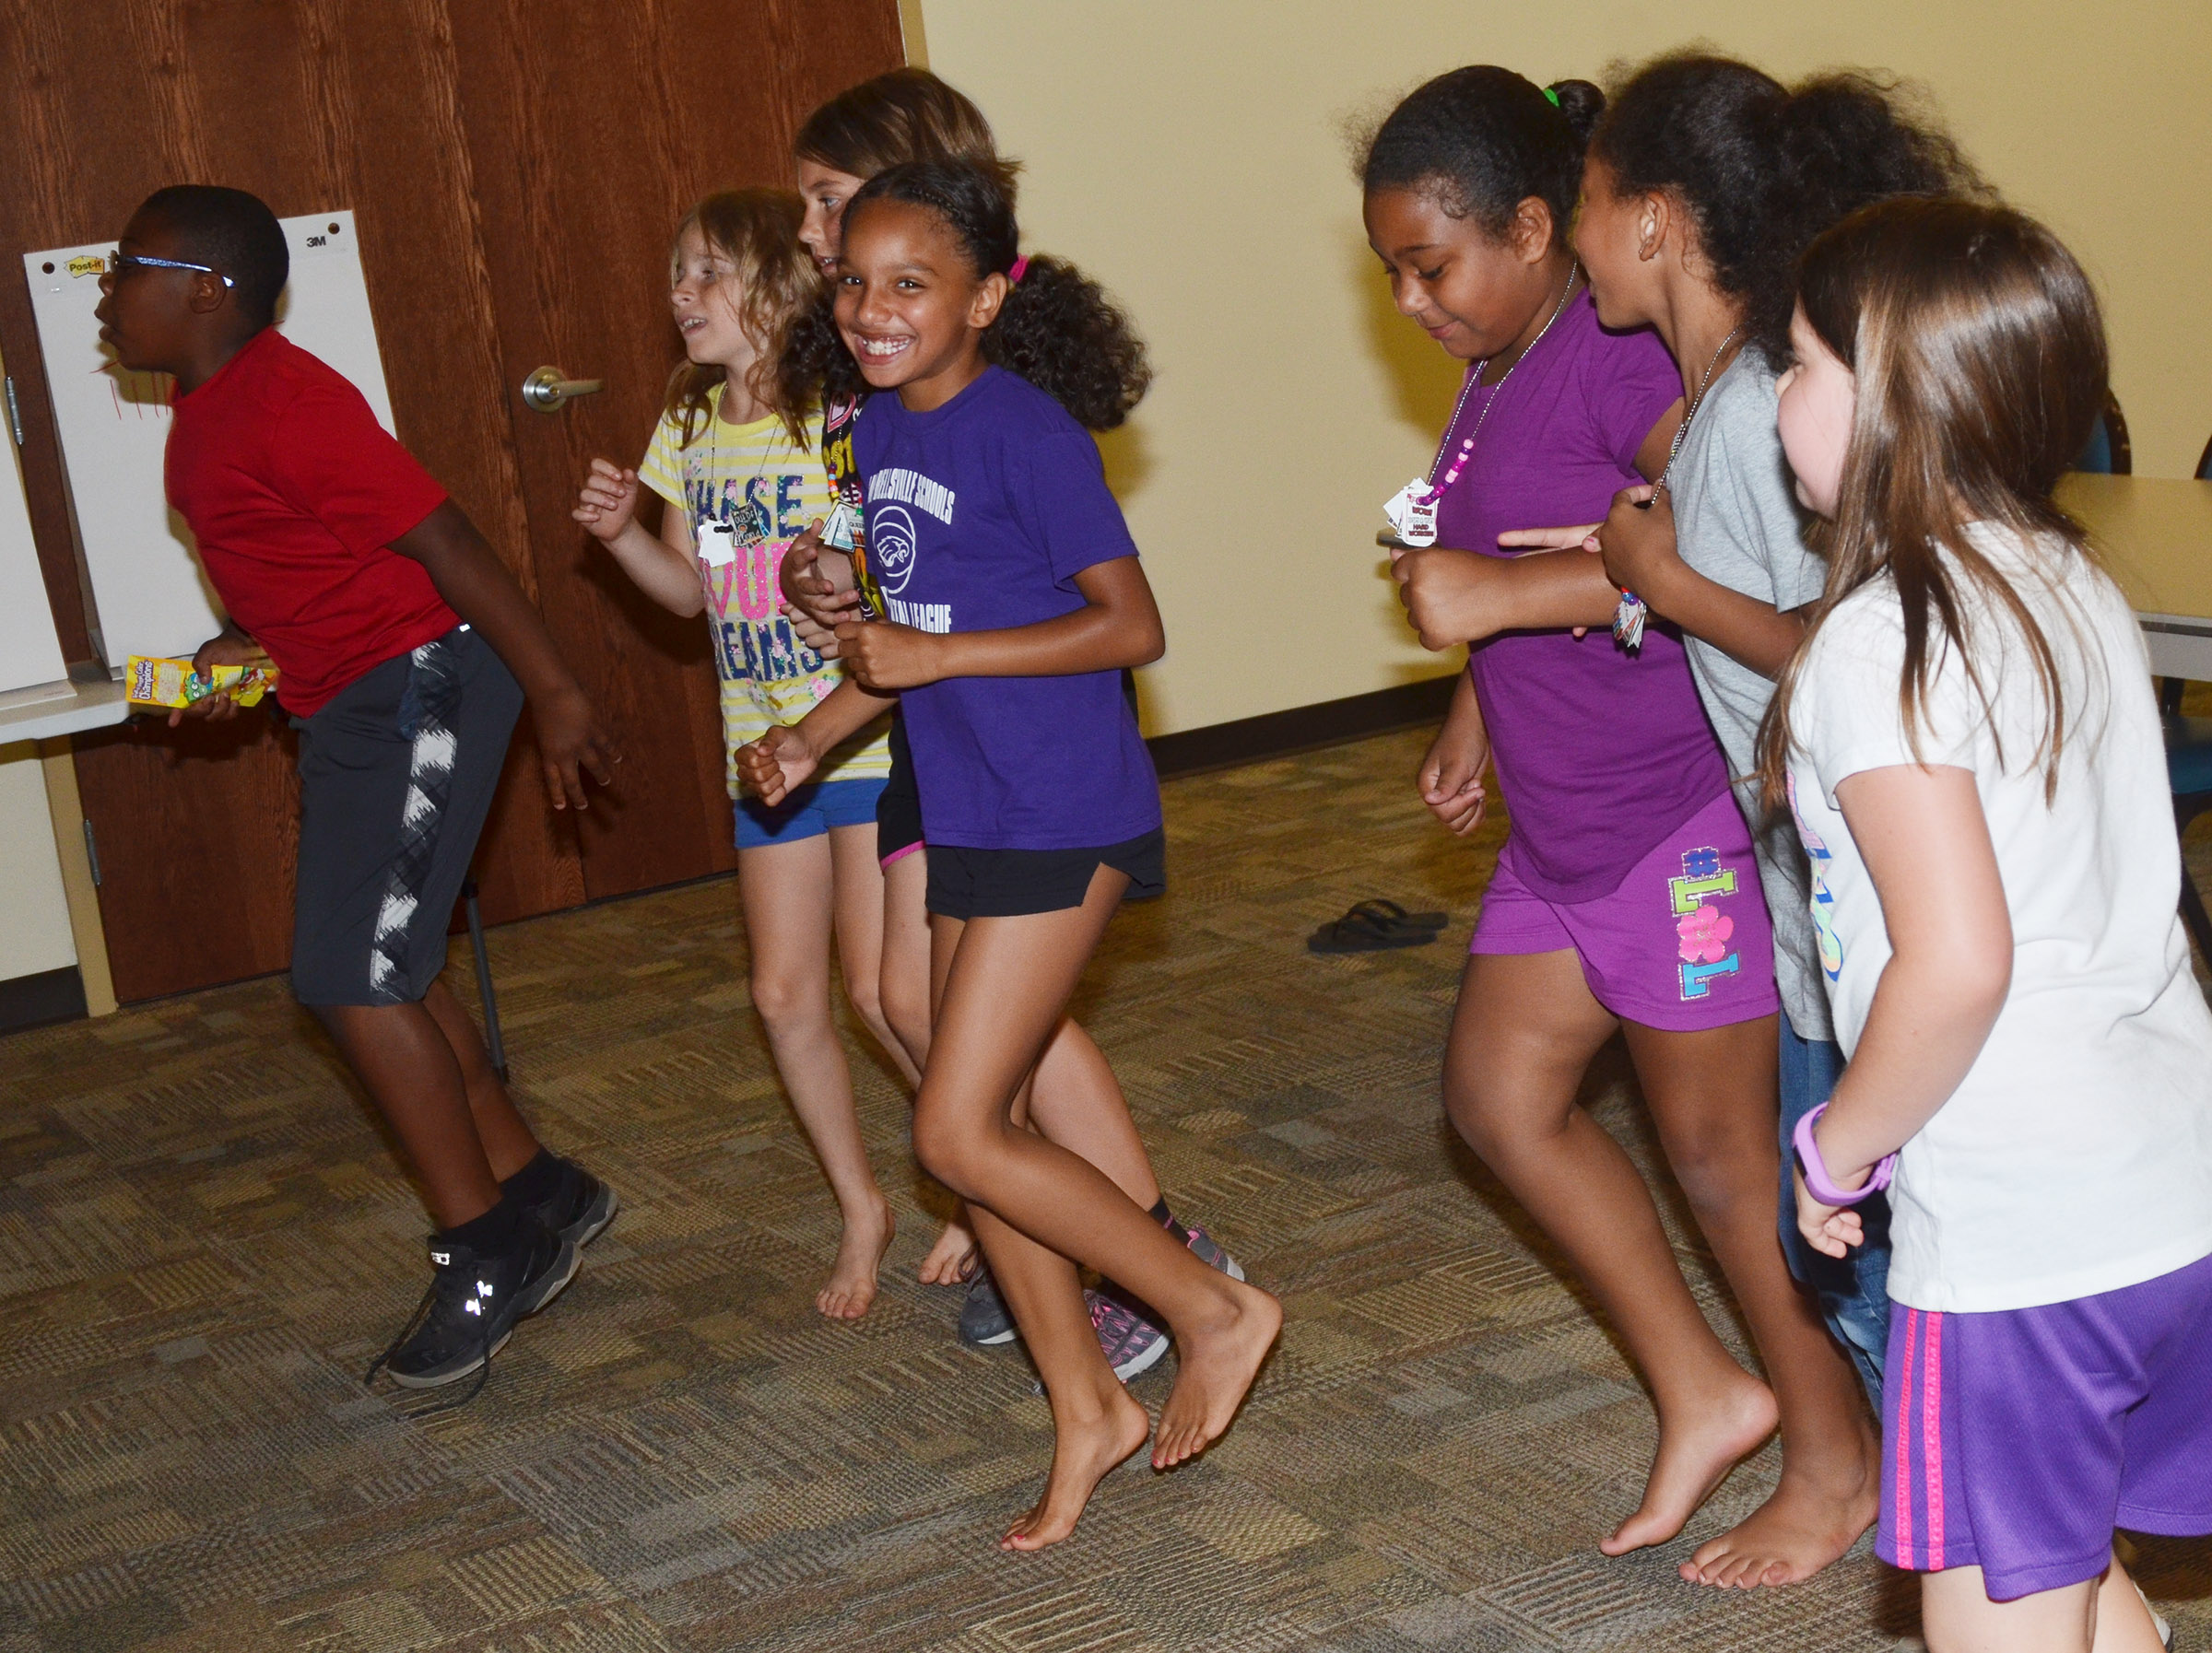 CES third-graders run in place together as part of their food groups game.